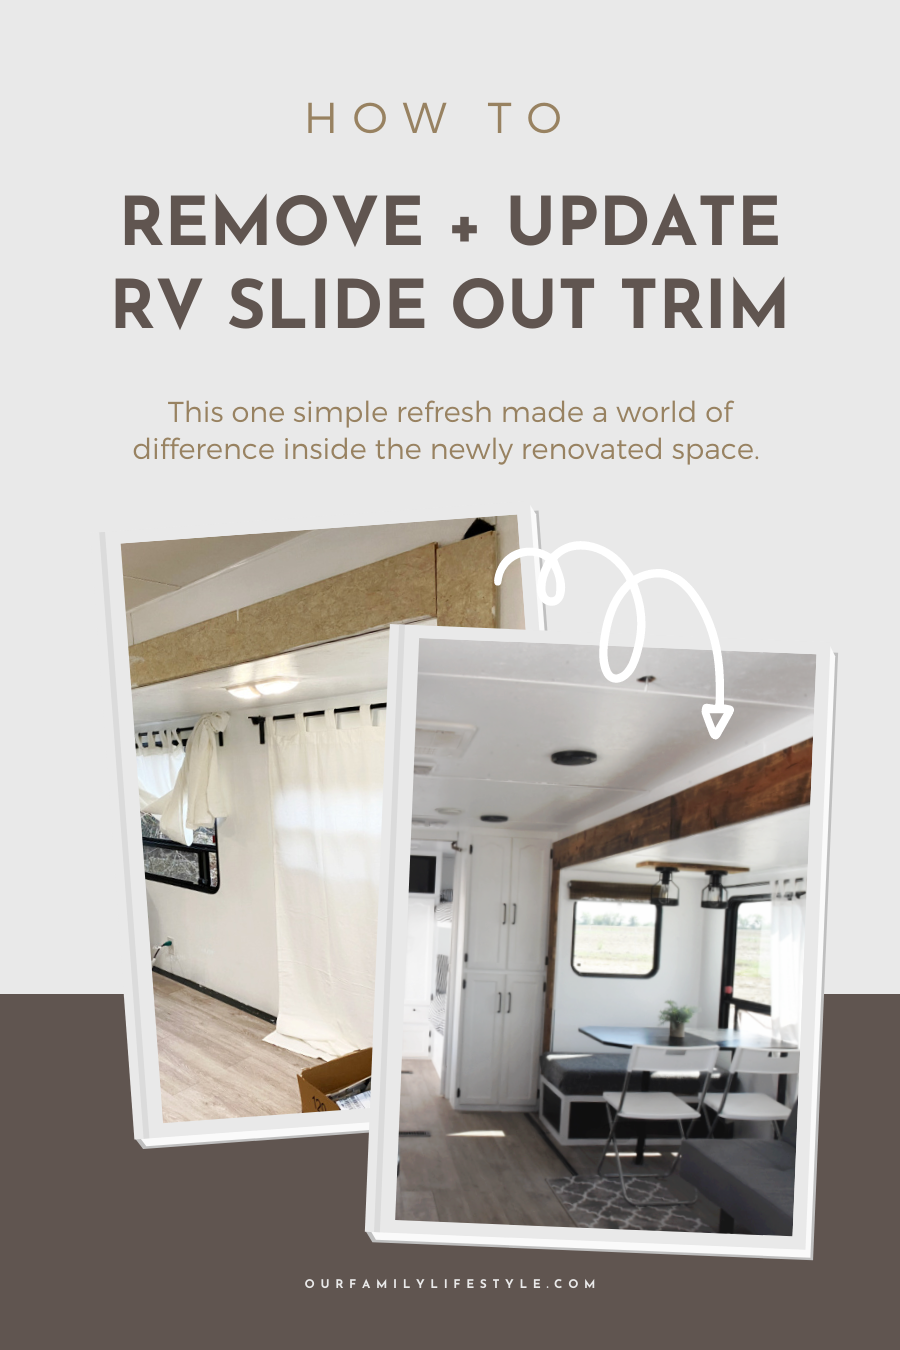 How to Remove + Update RV Slide Out Trim